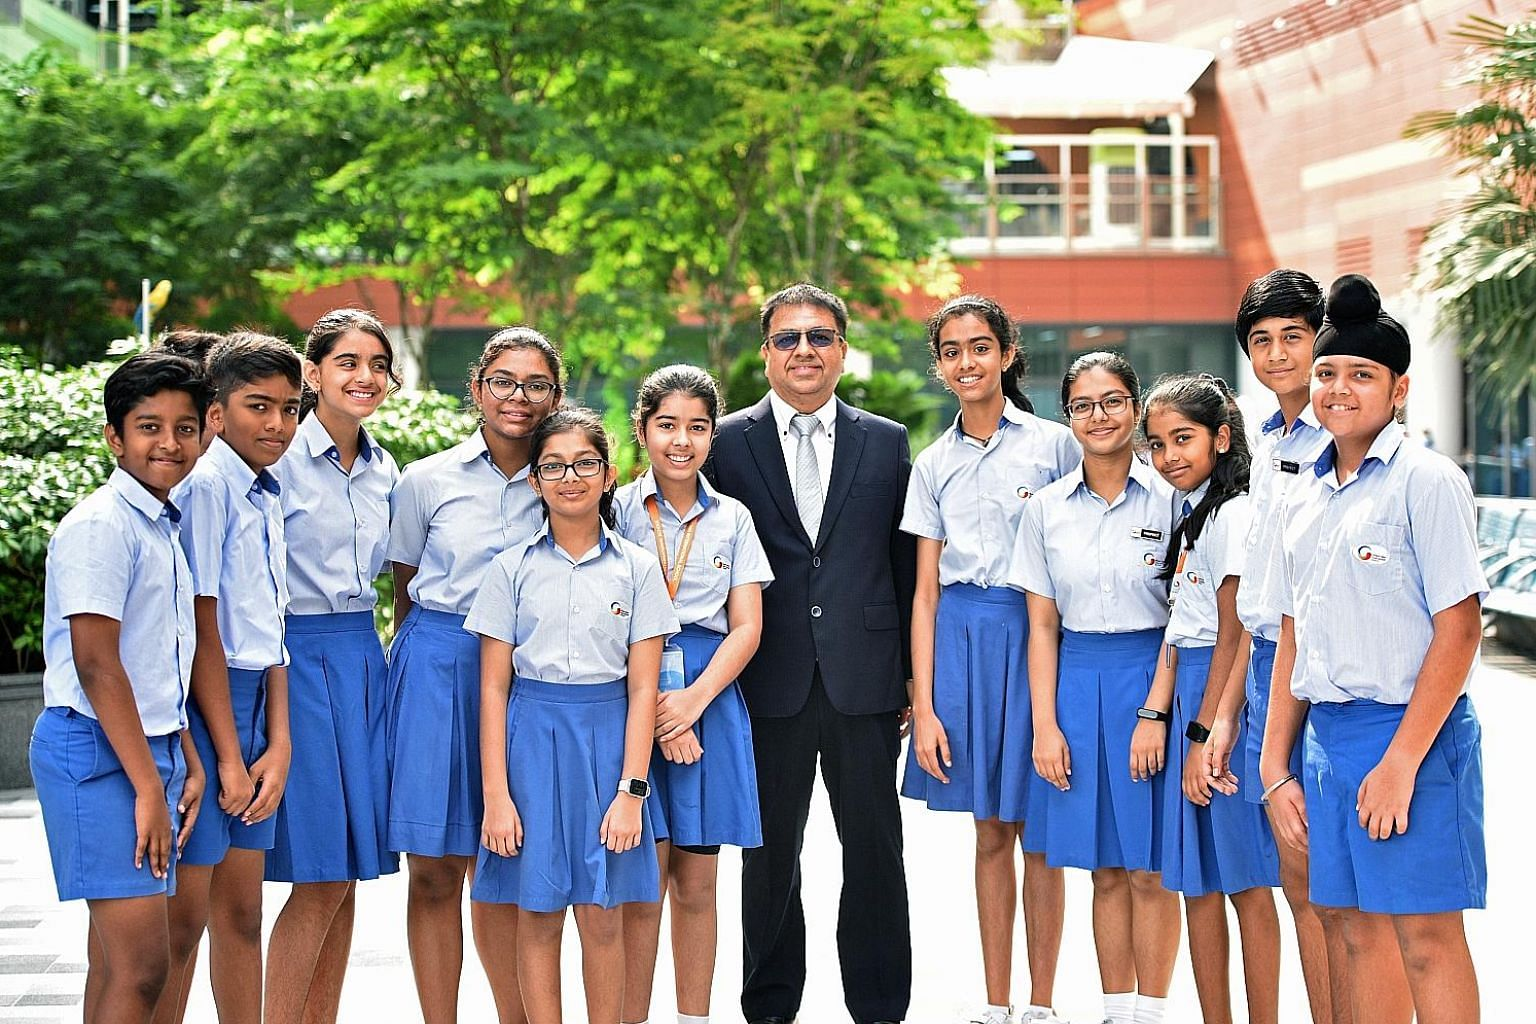 GIIS founder Atul Temurnikar with some students of the school, which he says is not one that works on a selective model. It accepts everybody and its challenge is to take an average cohort and raise individual performances.